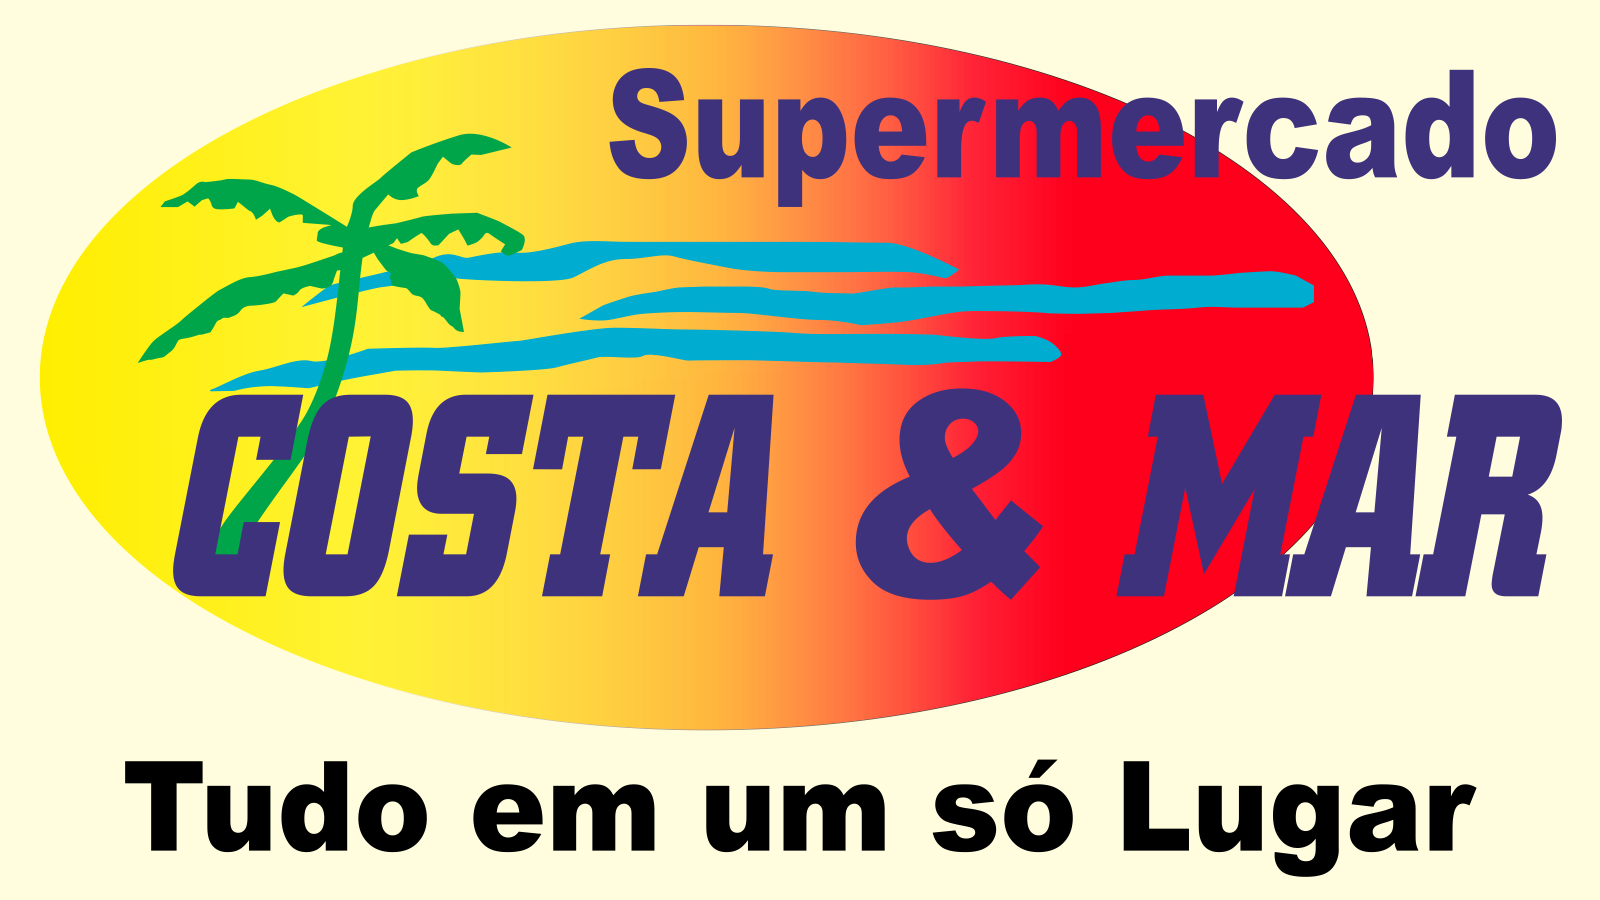 Costa e Mar Supermercado